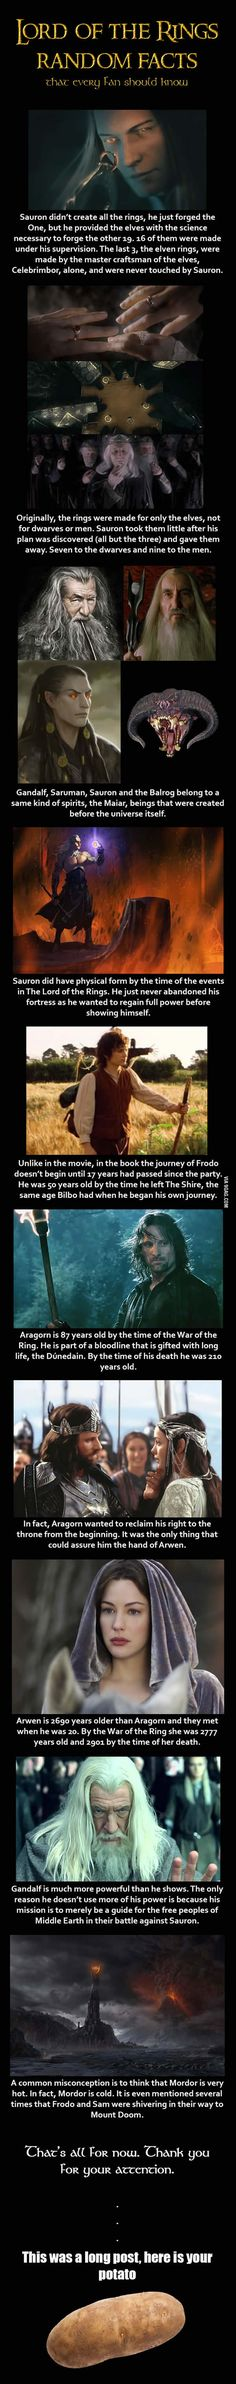 Here are some Lord of the Rings random facts part 1